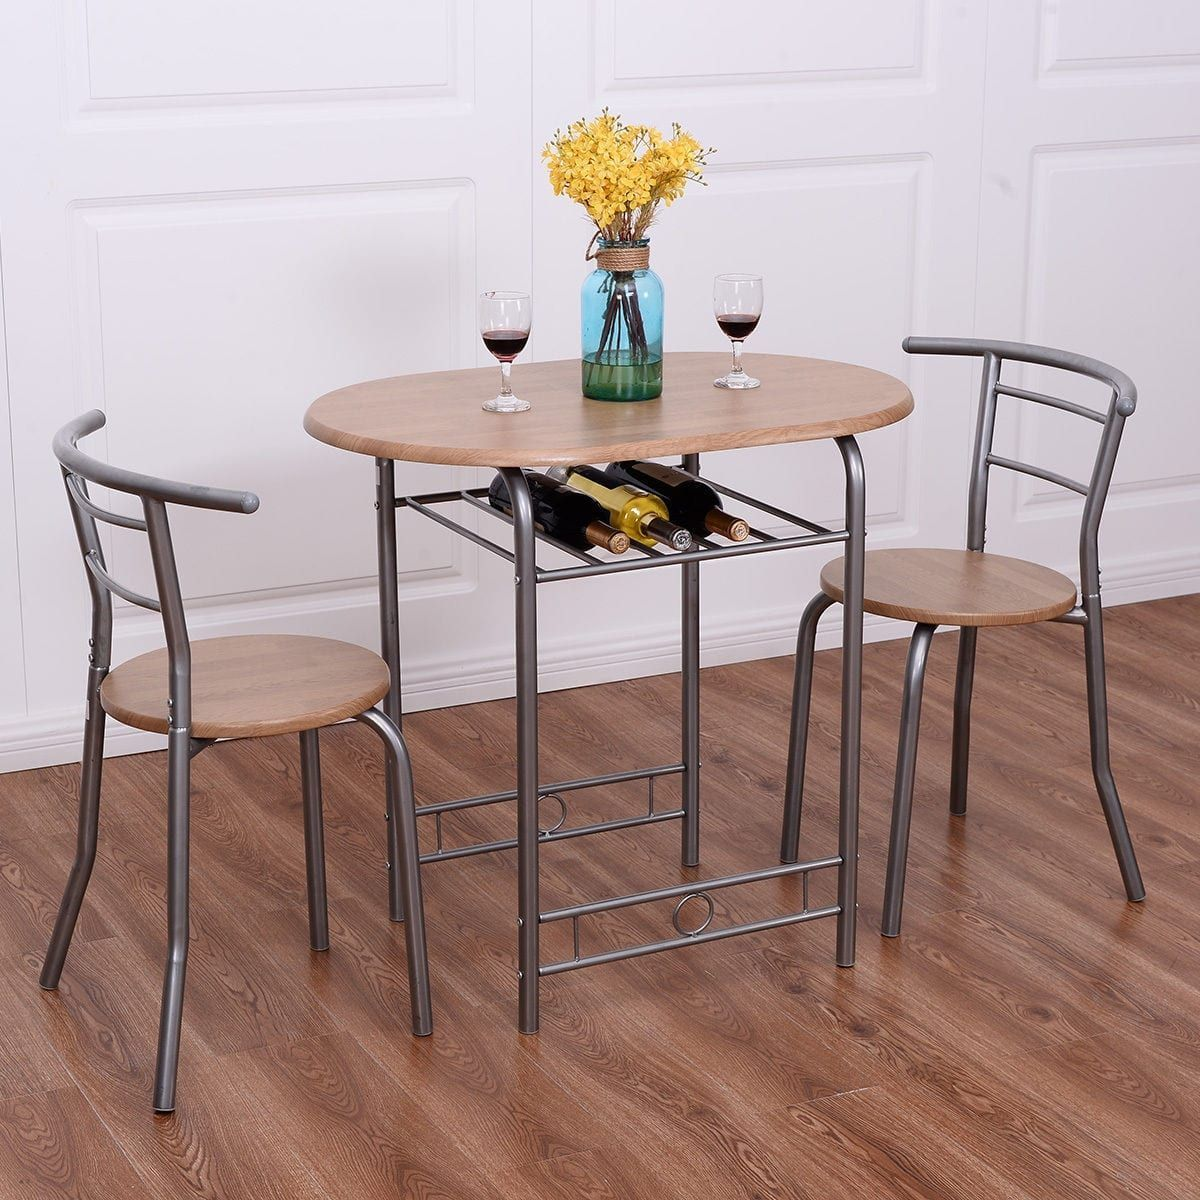 Costway 3 Pcs Bistro Dining Set Table And 2 Chairs Kitchen Pub Amazing Restaurant Dining Room Tables Decorating Design